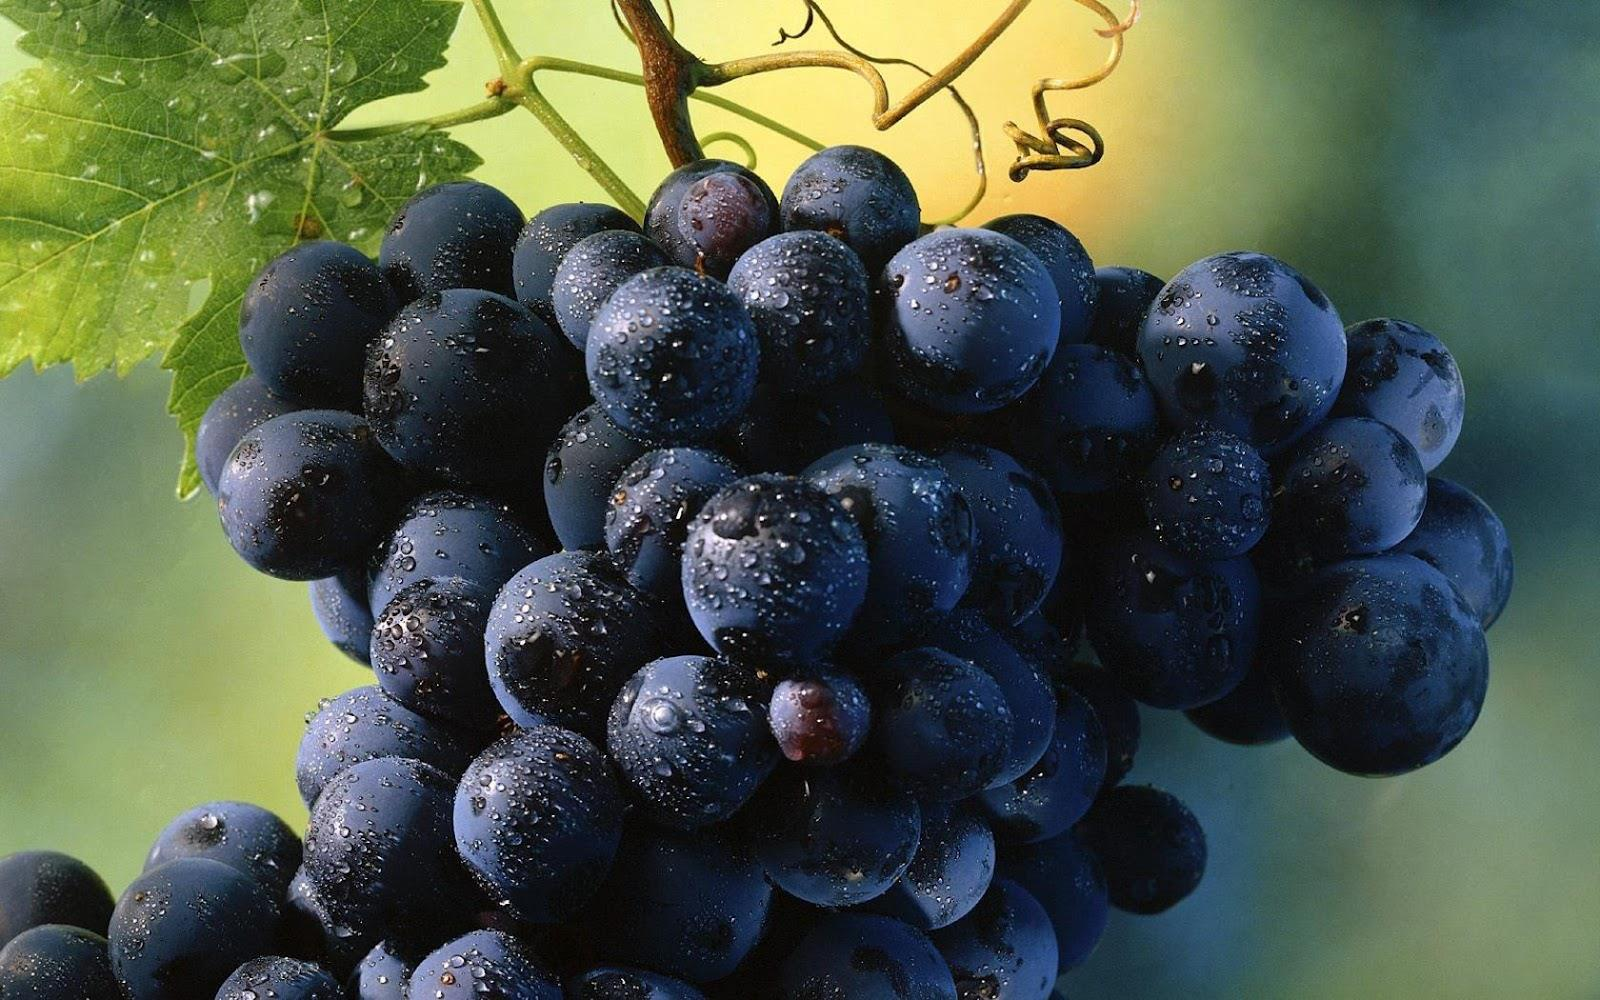 TRUTH | French wines have the highest antitoxin count